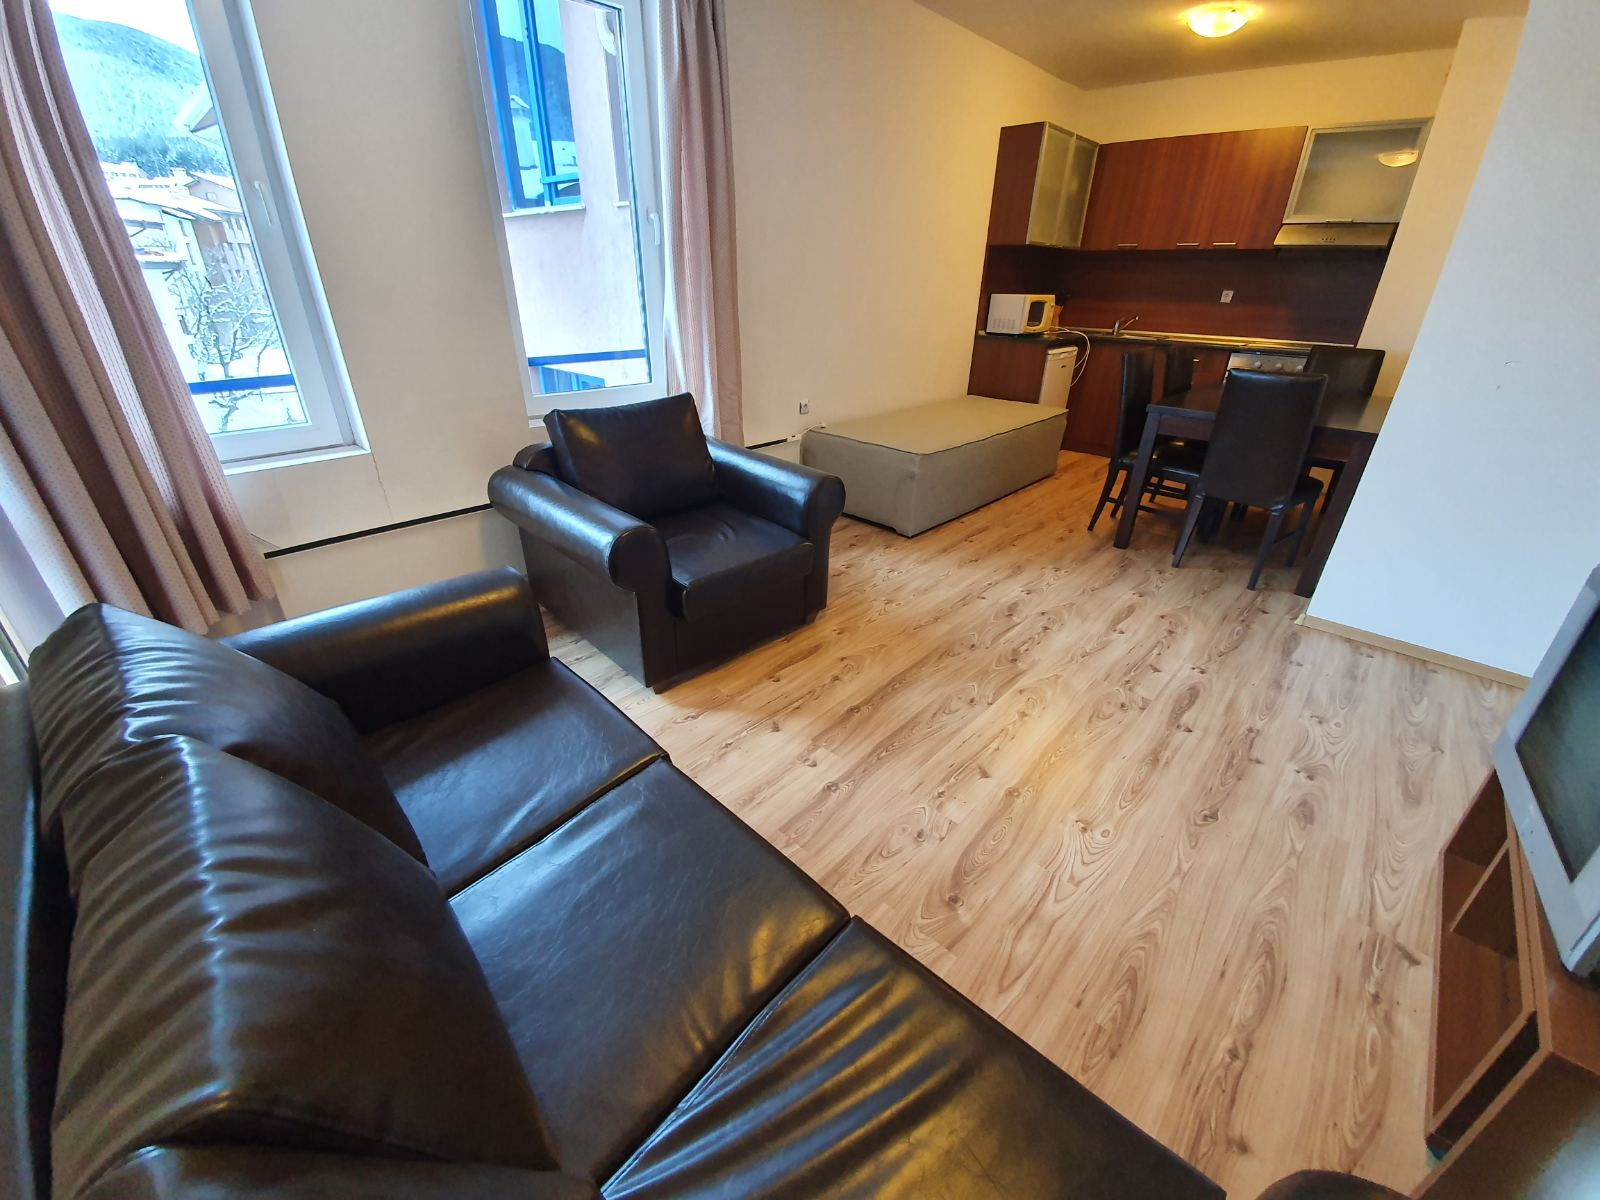 south apartment for sale close to the ski lift